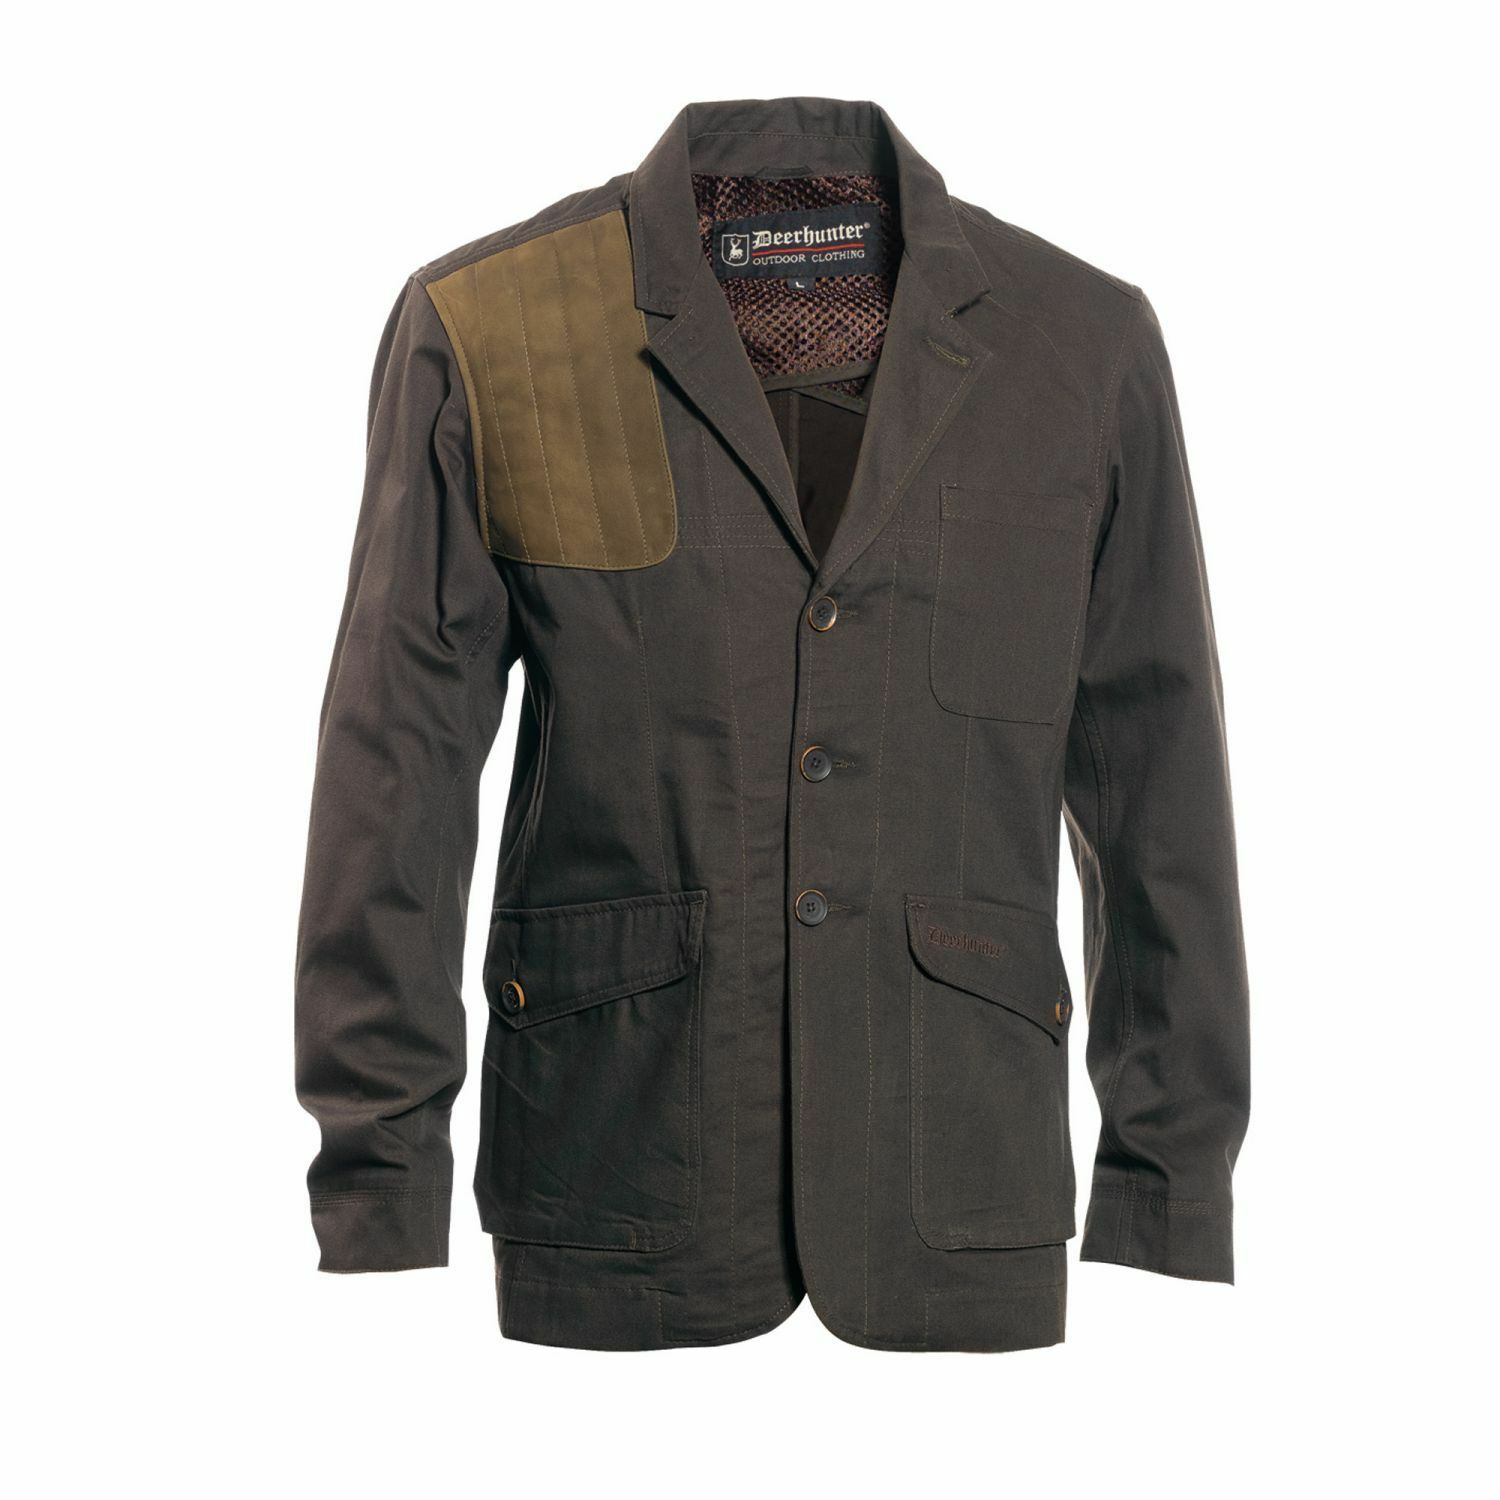 Deerhunter 5108  Monteria Shooting caza chaqueta  393-DH Timber, tamaño xl